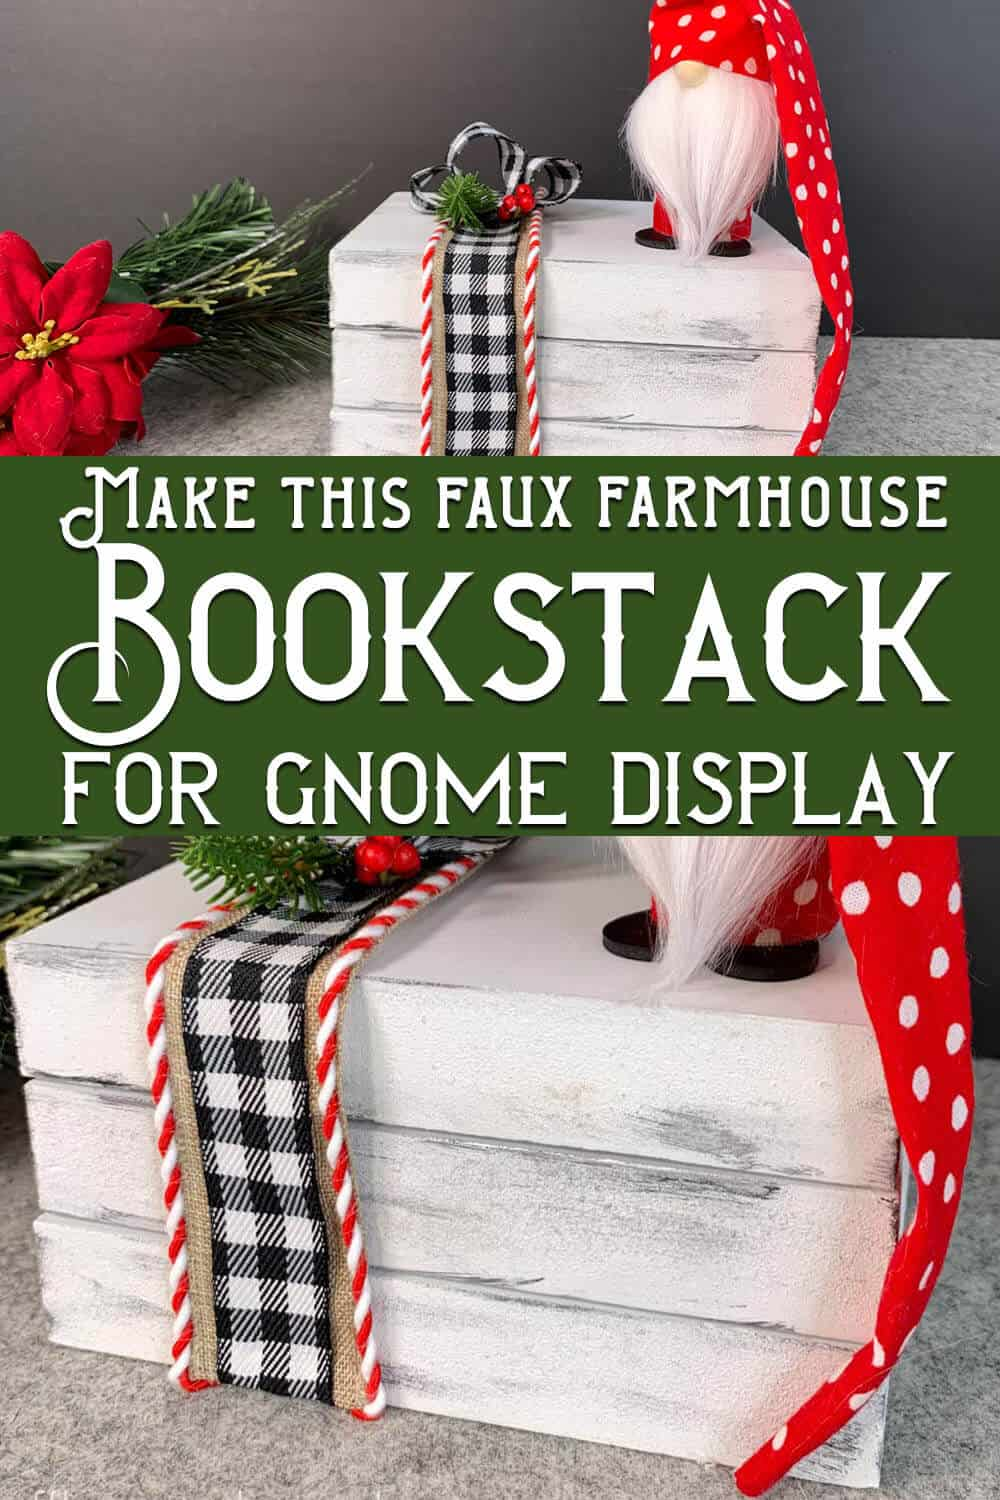 photo collage of fake book stack made of wood with text which reads make this faux farmhouse bookstack for gnome display